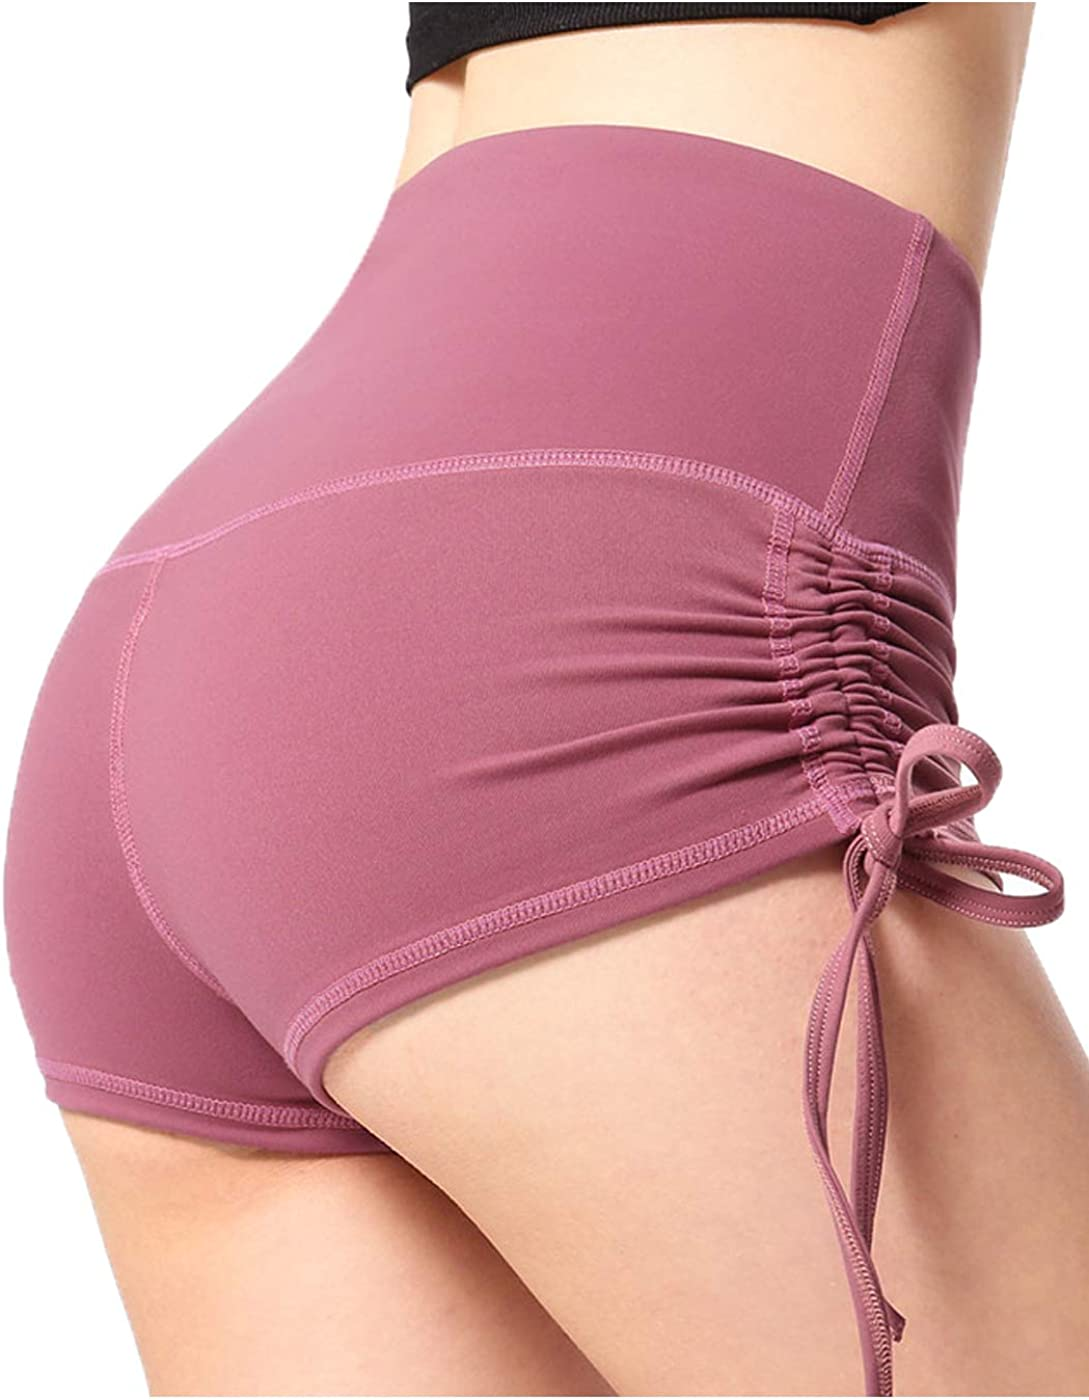 Anna-Kaci Butt Lifting Yoga Shorts for Women Ruched Sports Booty Workout Gym Running Shorts